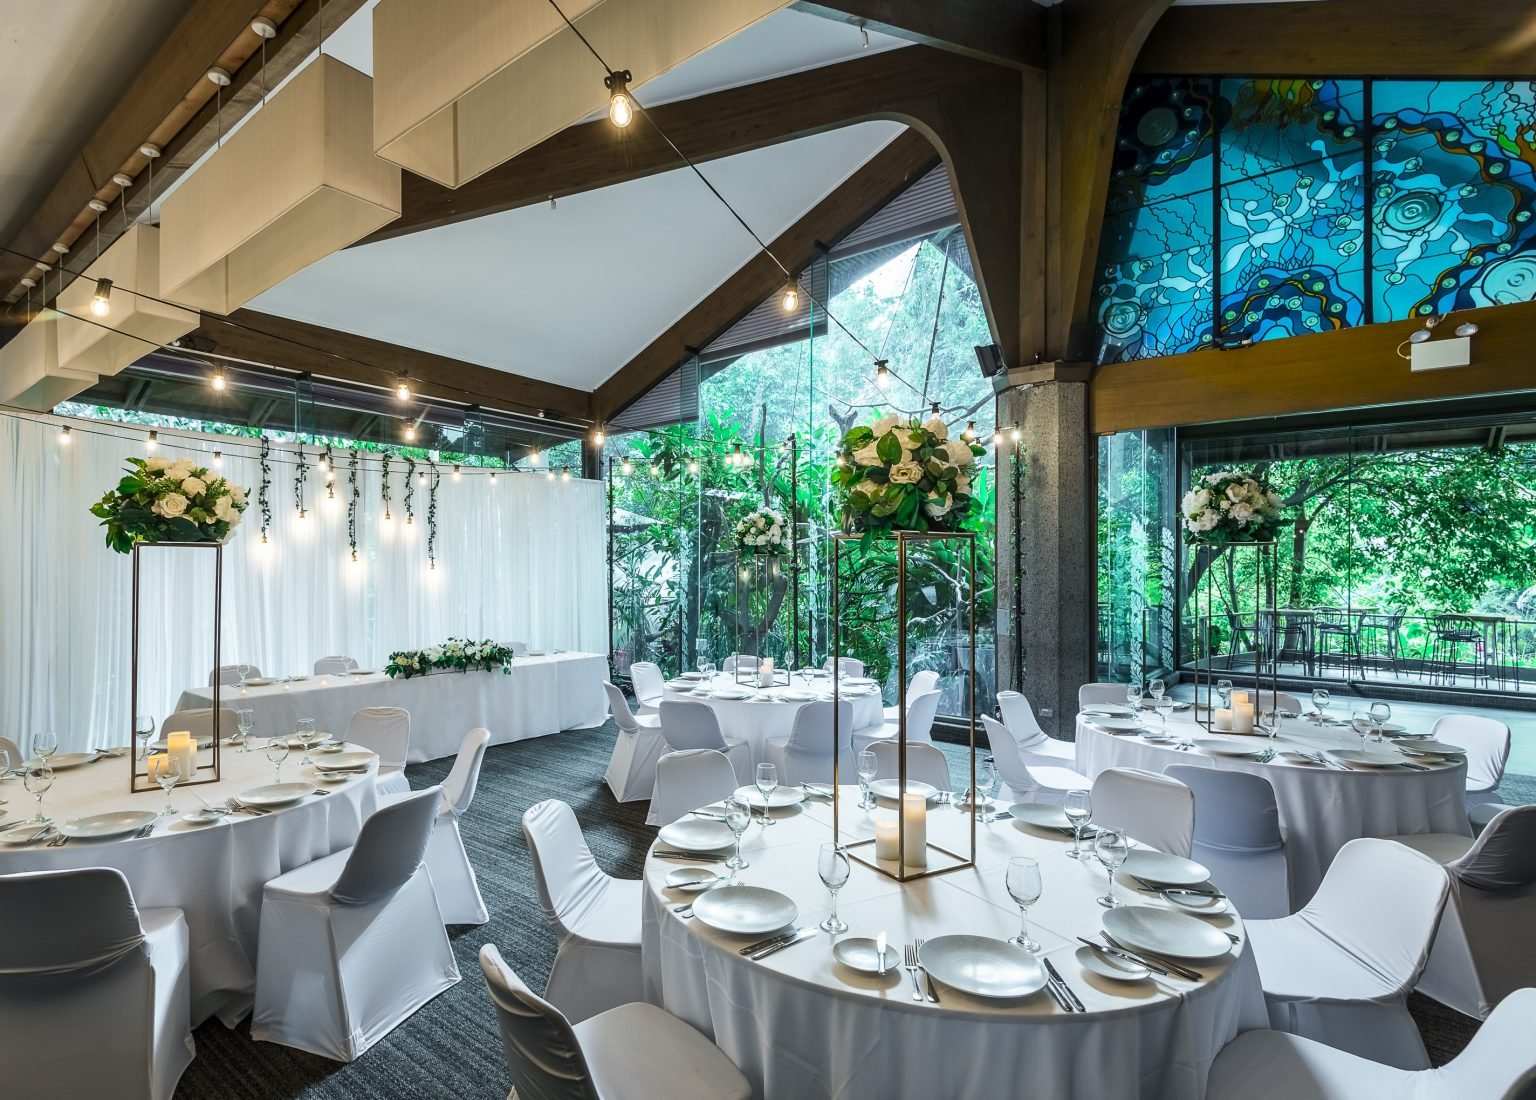 Rainforest Room Dinner Setting